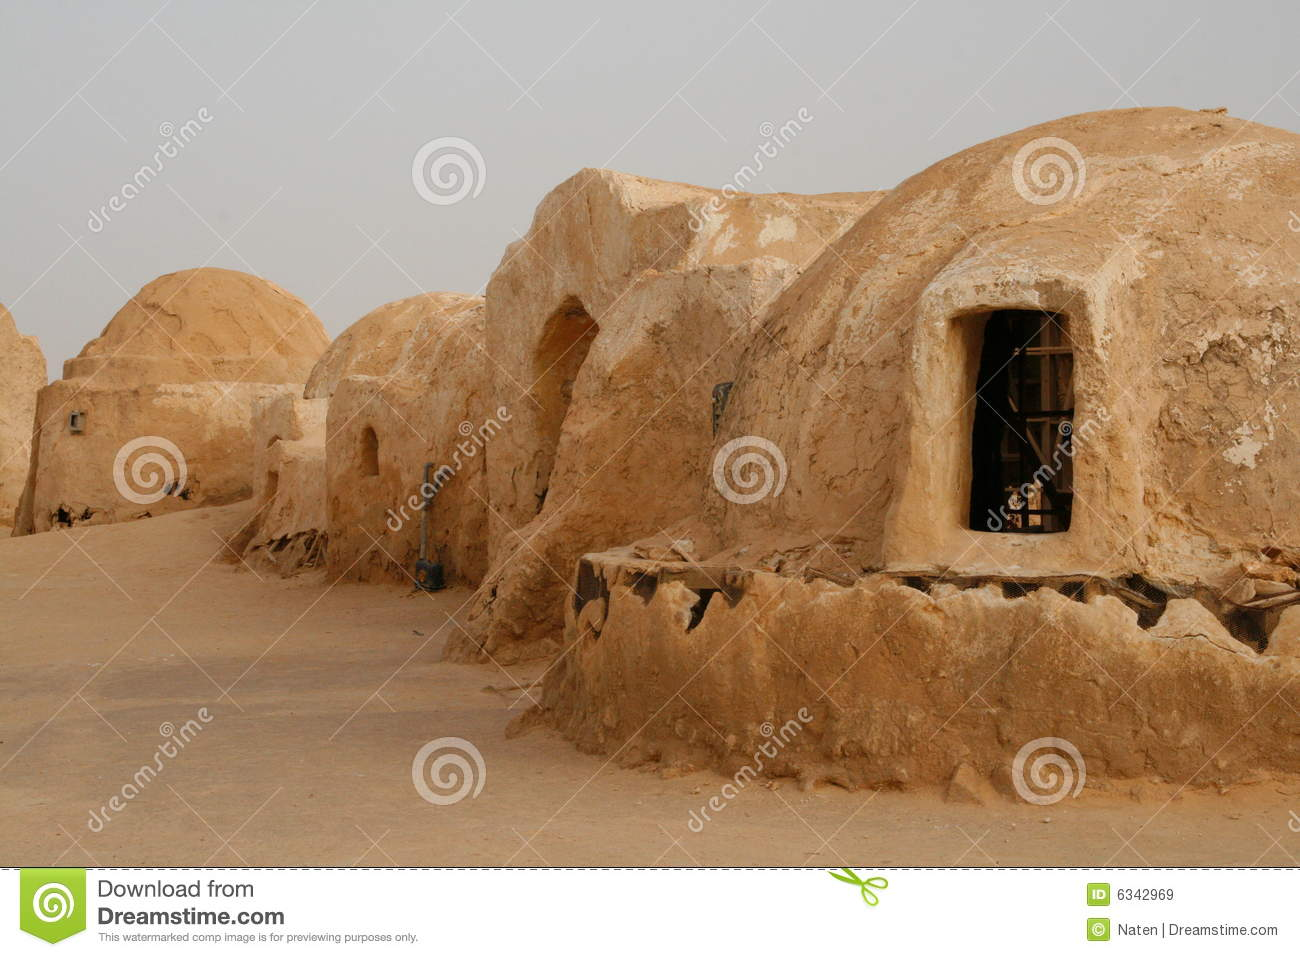 Star Wars Stock Image. Image Of Travel, Africa, Attraction